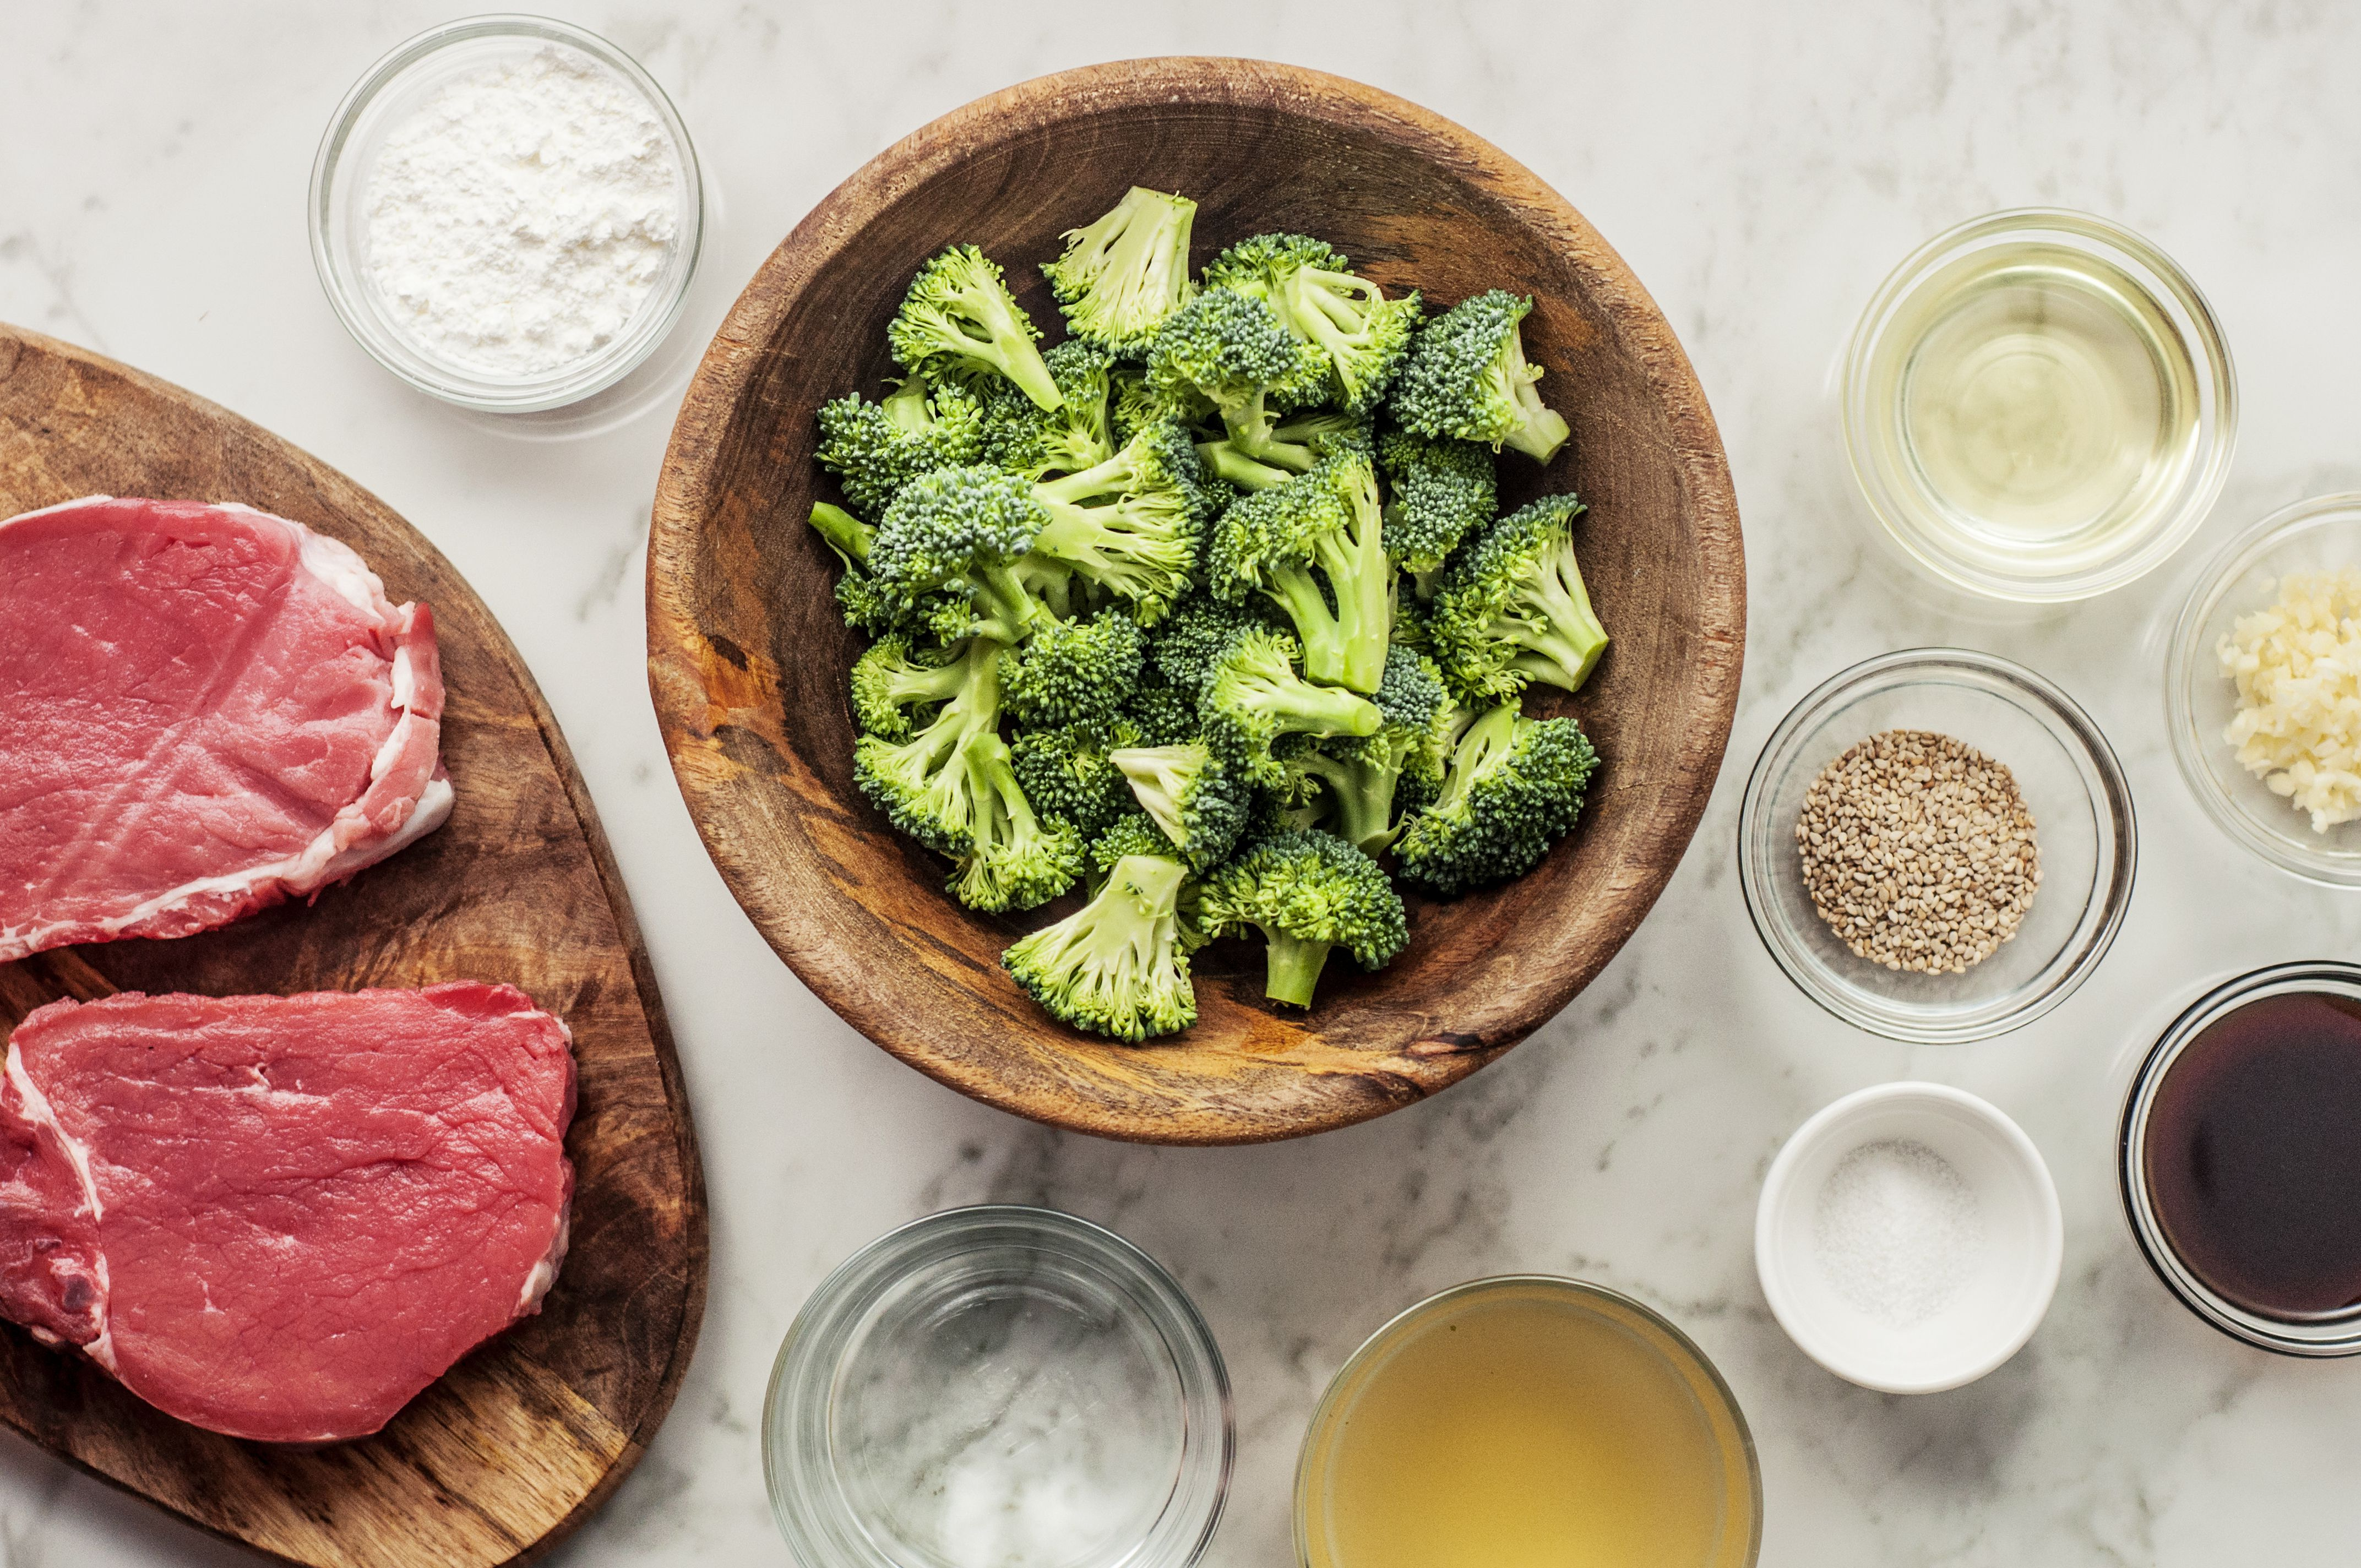 Ingredients for beef and broccoli stir-fry